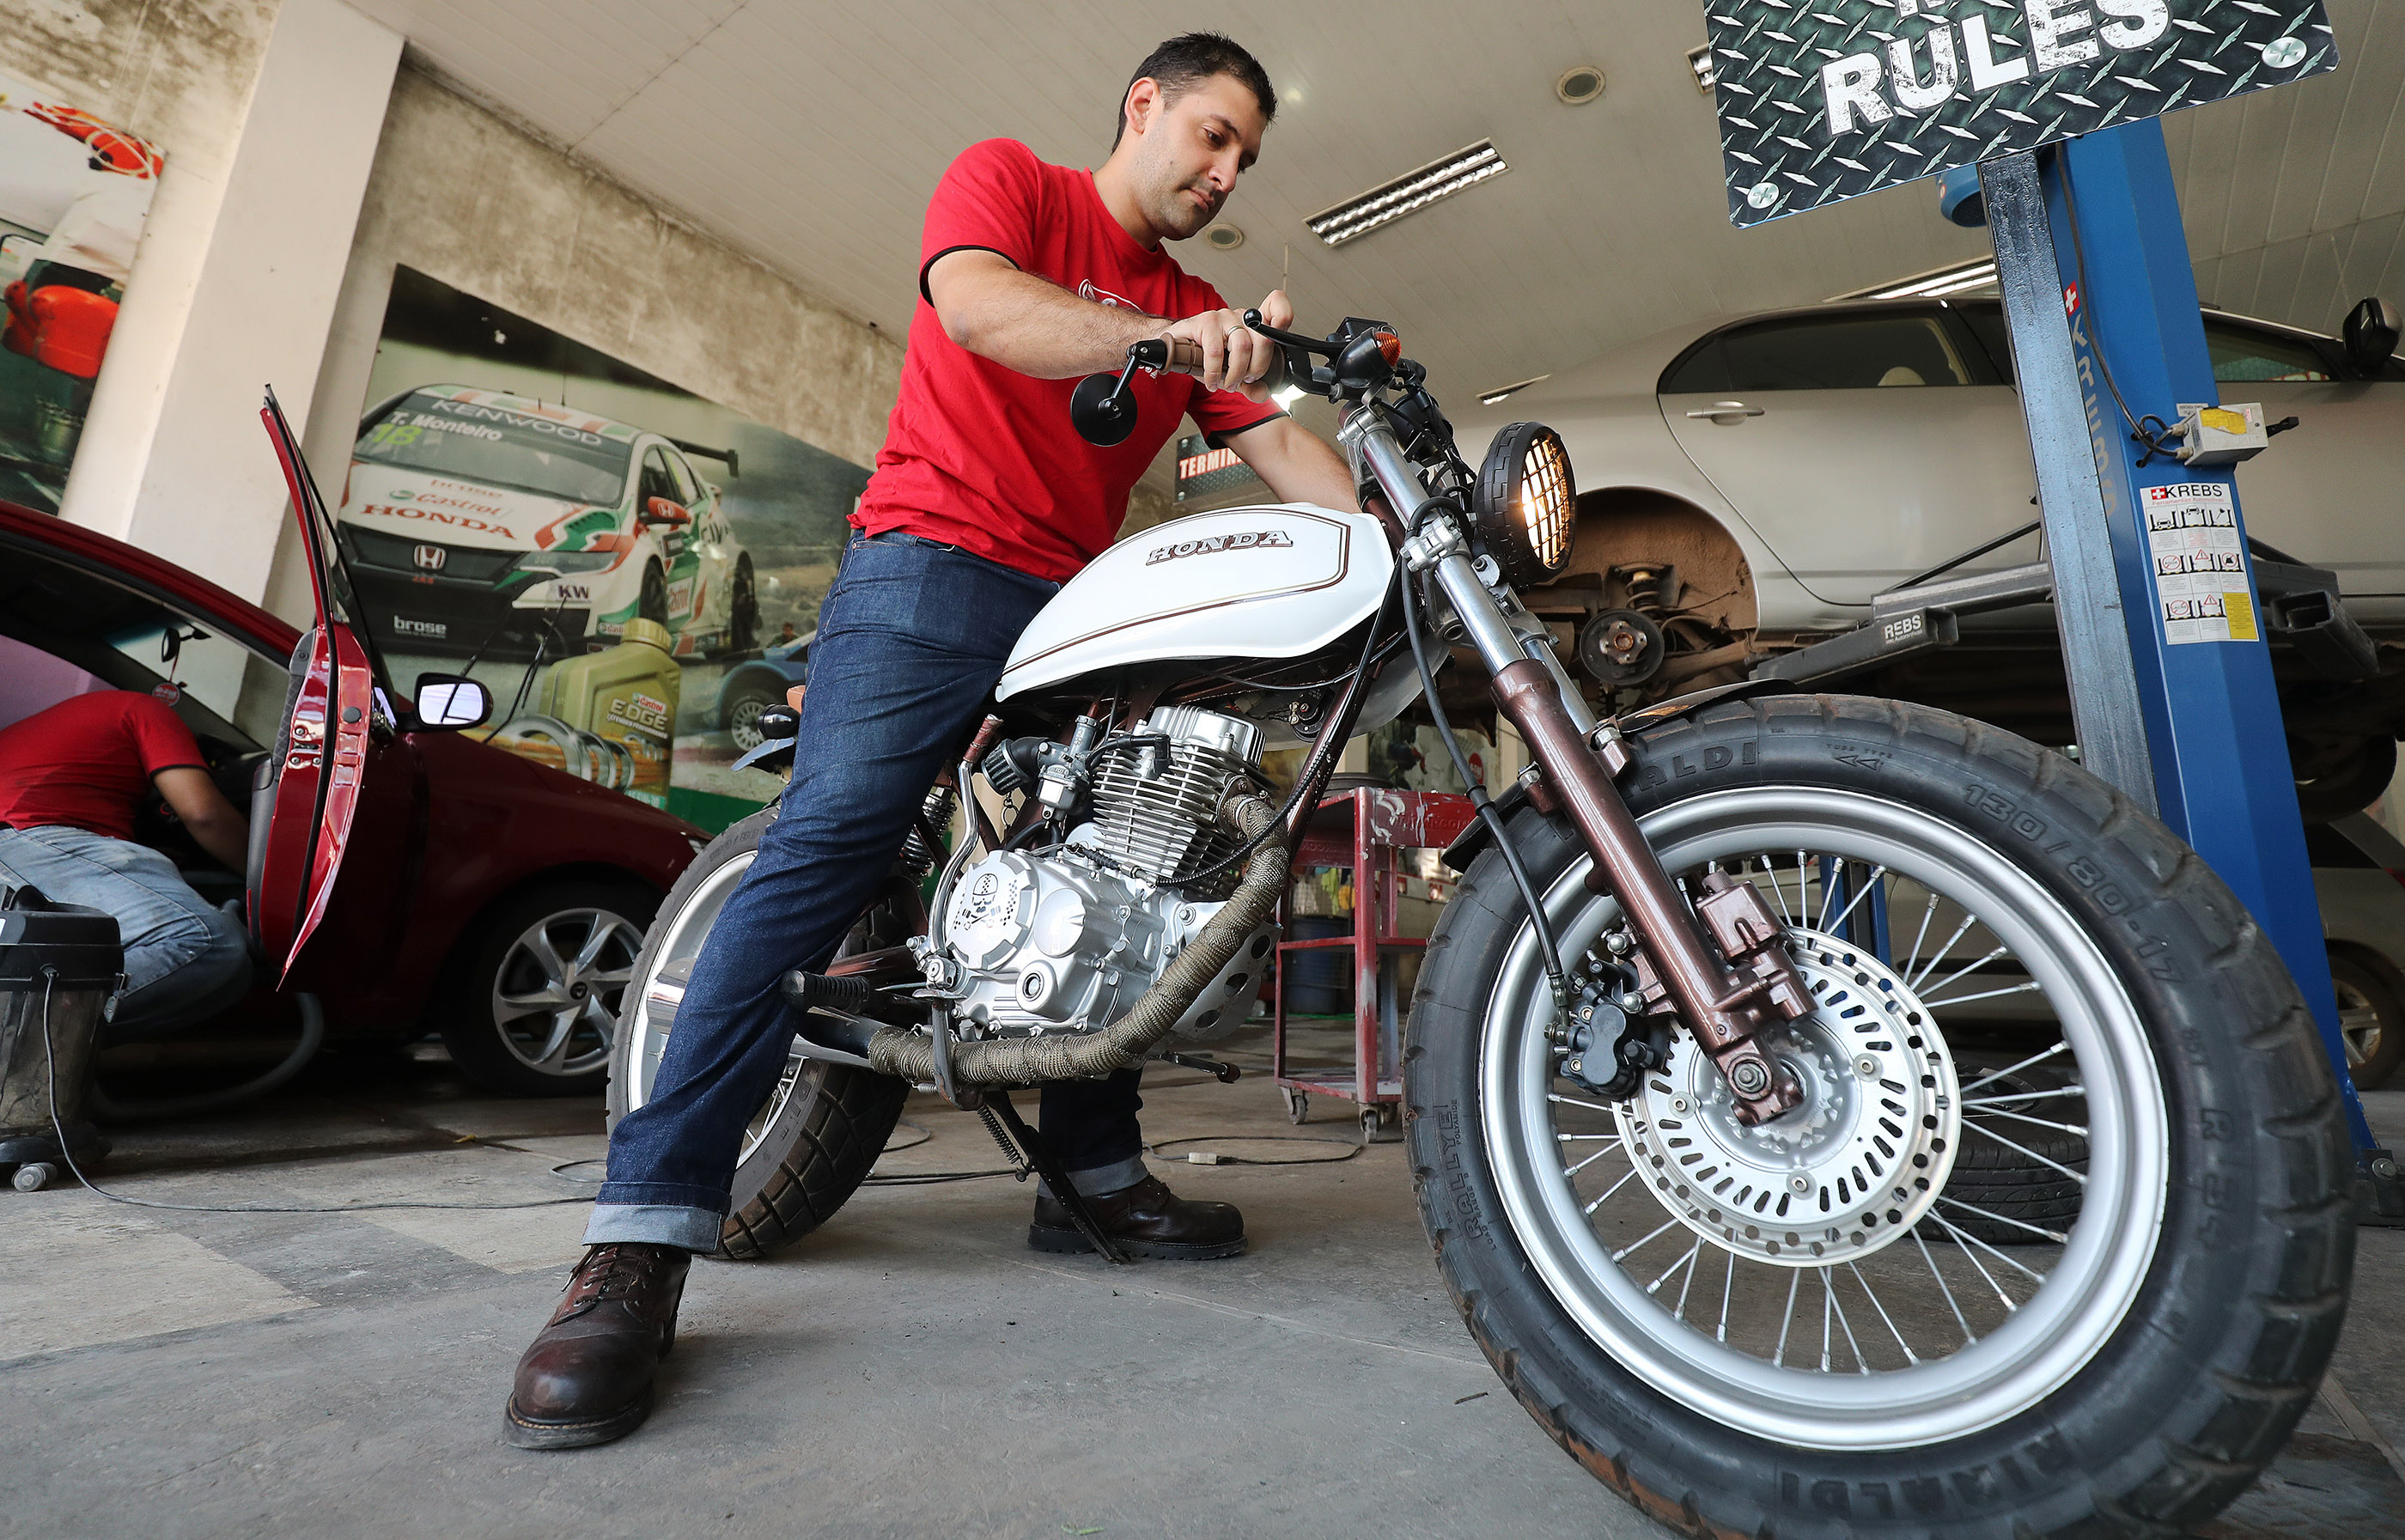 Bishop Lorenzo Britez fires up his motorcycle at his car wash and auto body store in Asuncion, Paraguay, on Monday, Oct. 22, 2018. Bishop Britez took Self Reliance courses offered by the Church to help with his business skills.